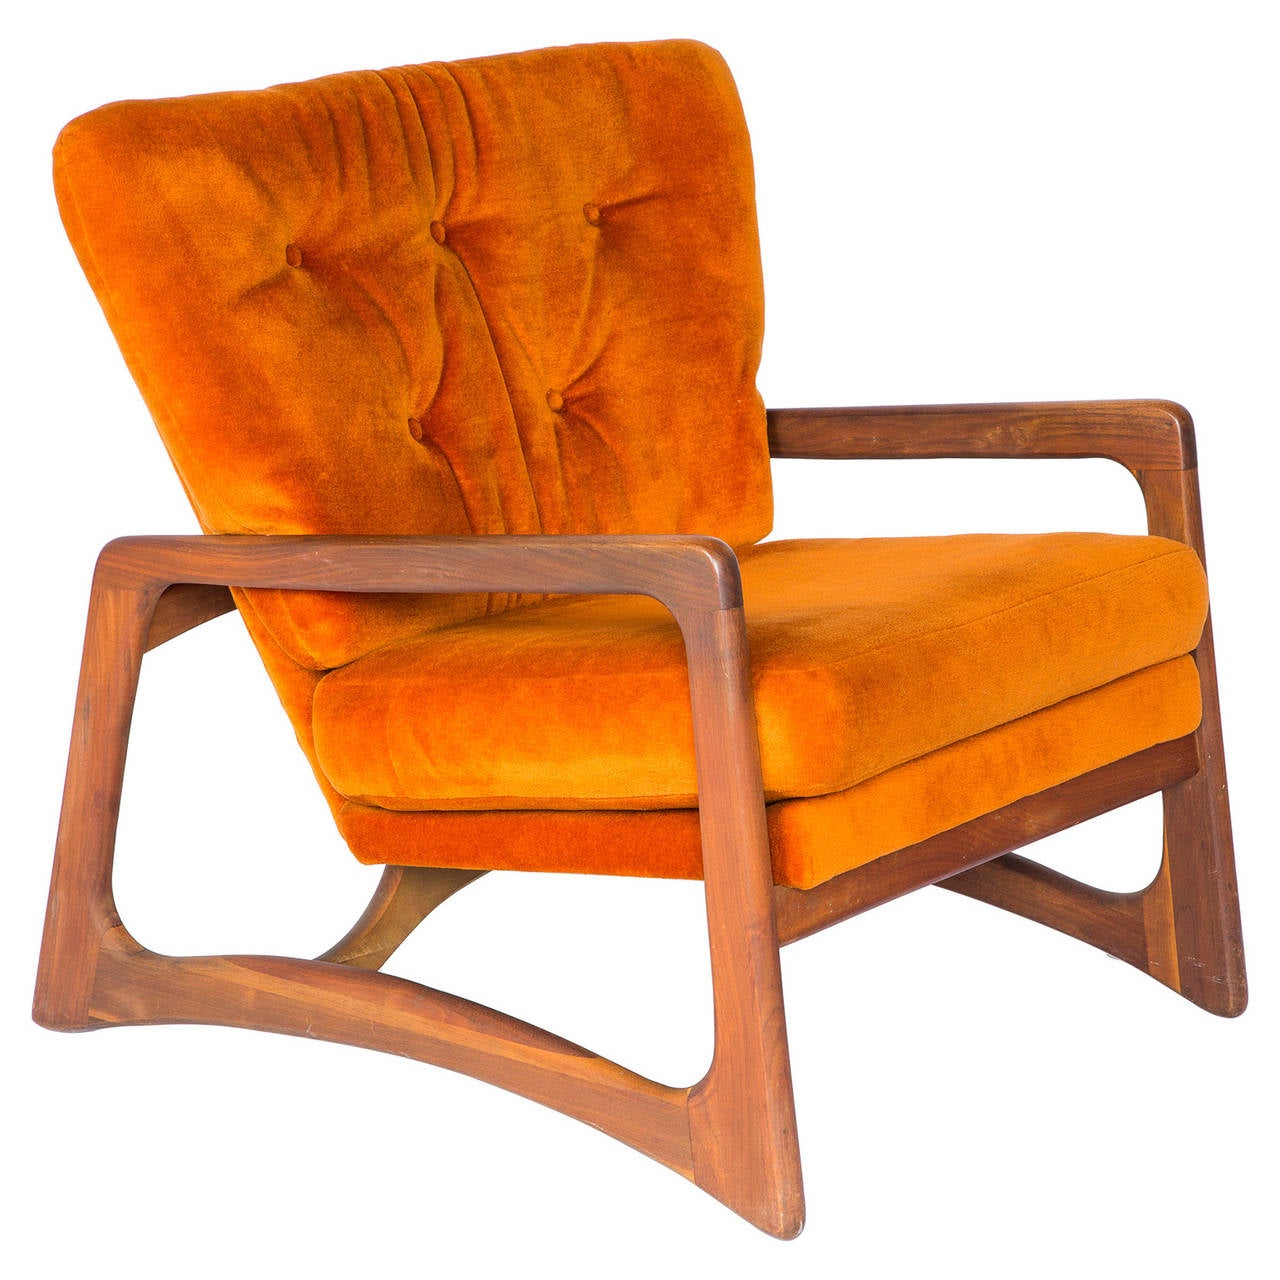 Adrian Pearsall for Craft Associates Sculpted Lounge Chair in Orange Velvet a